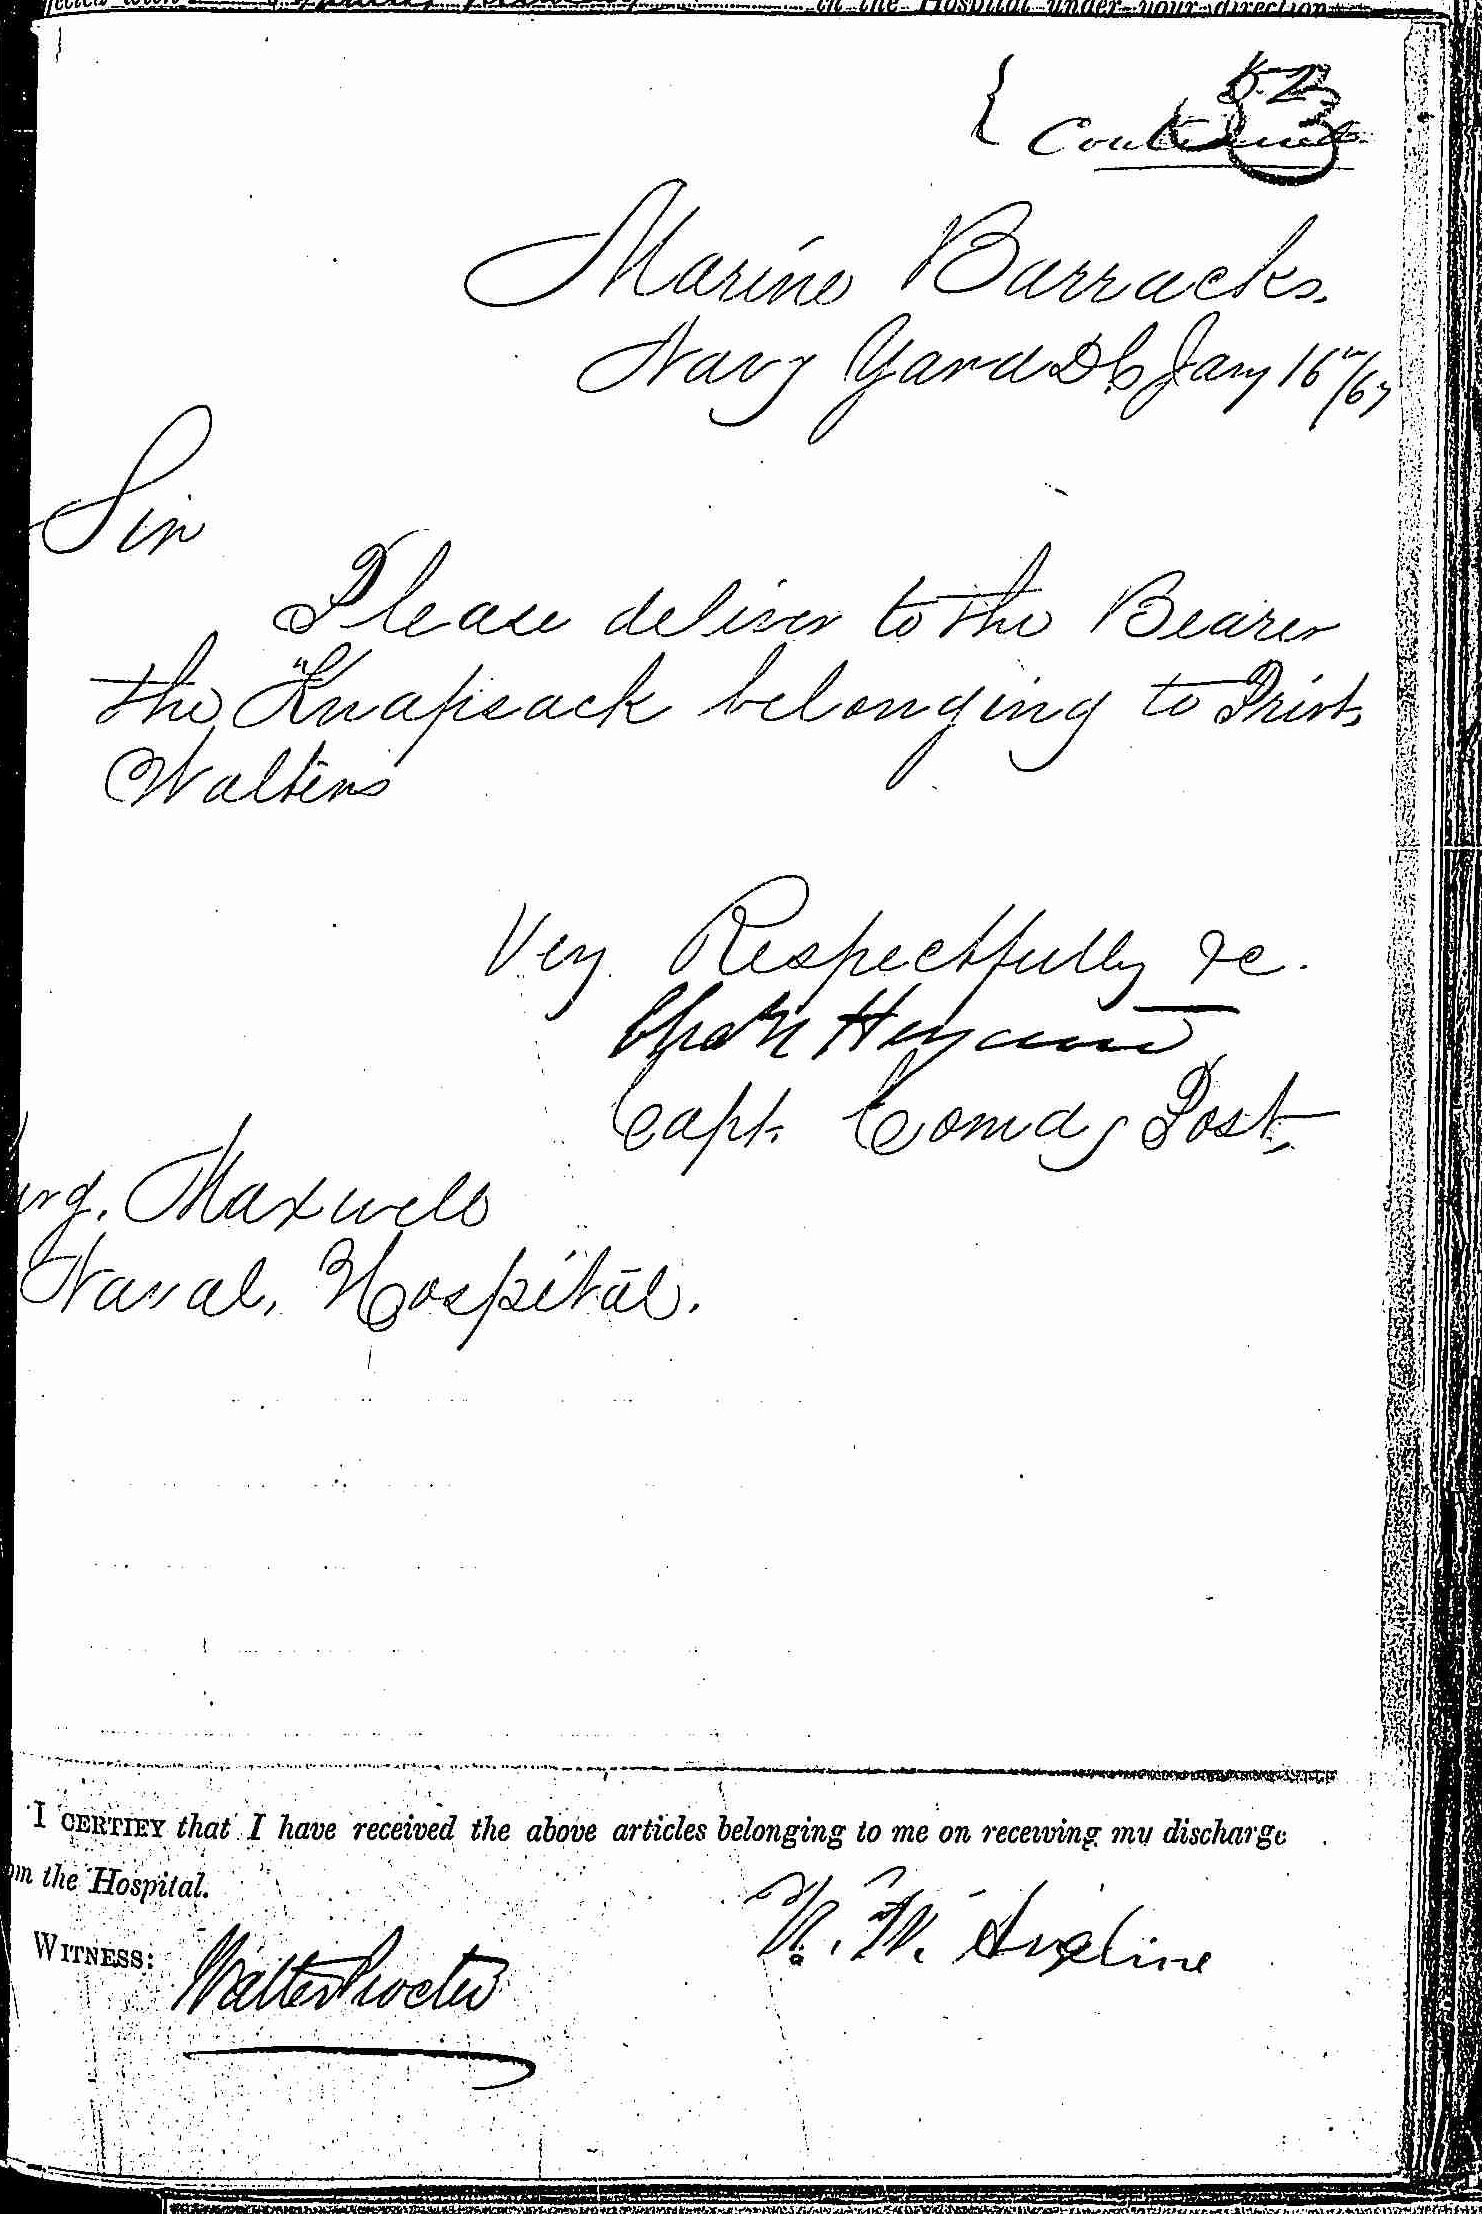 Entry for Edward Walters (first admission page 3 of 4) in the log Hospital Tickets and Case Papers - Naval Hospital - Washington, D.C. - 1865-68